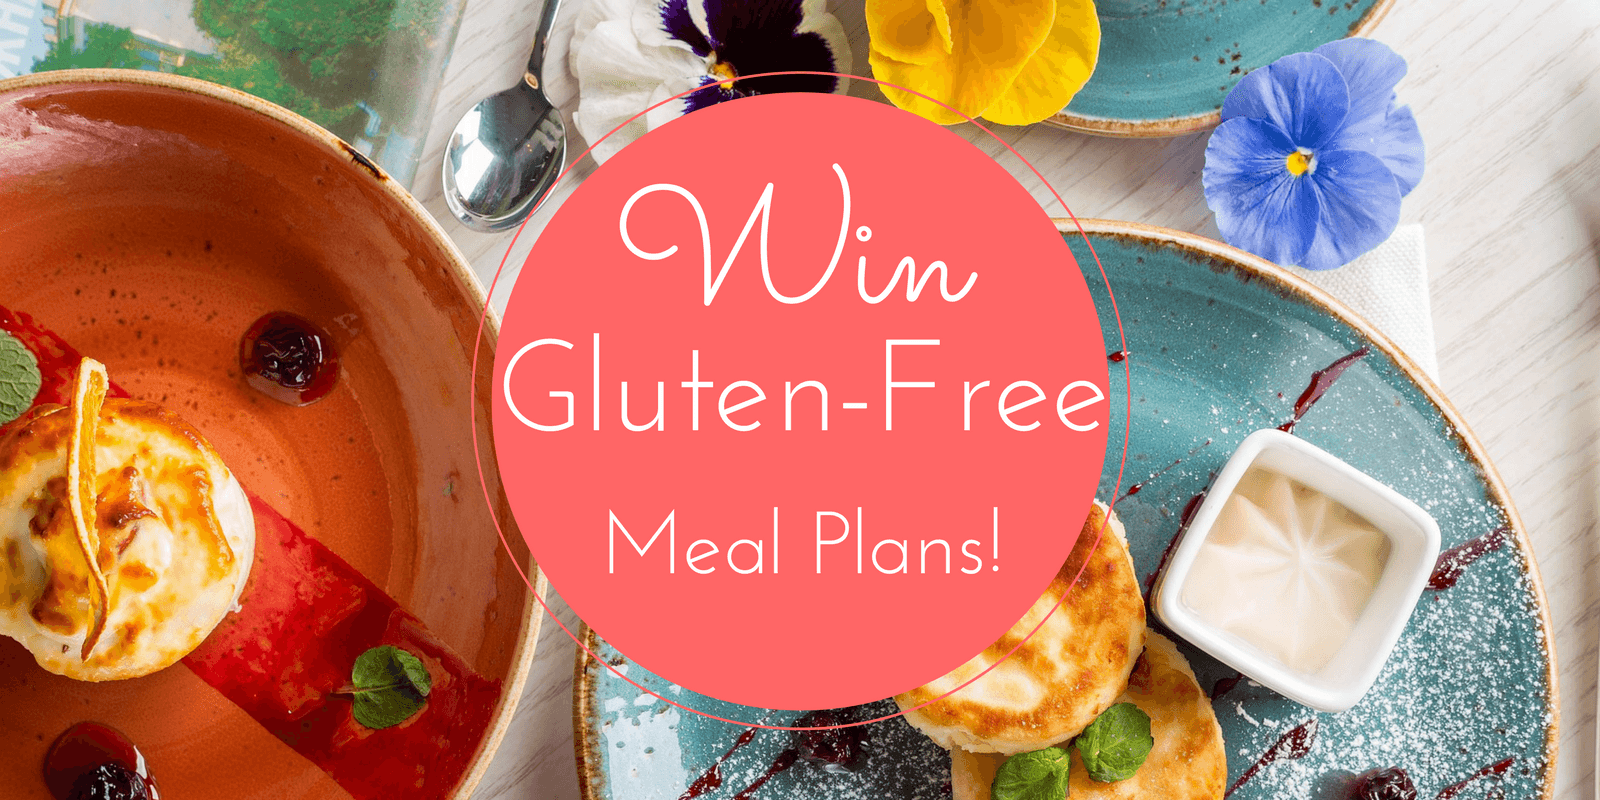 Enter for your chance to win12 Months of Weekly online Gluten-Free Meal Plans from eMeals